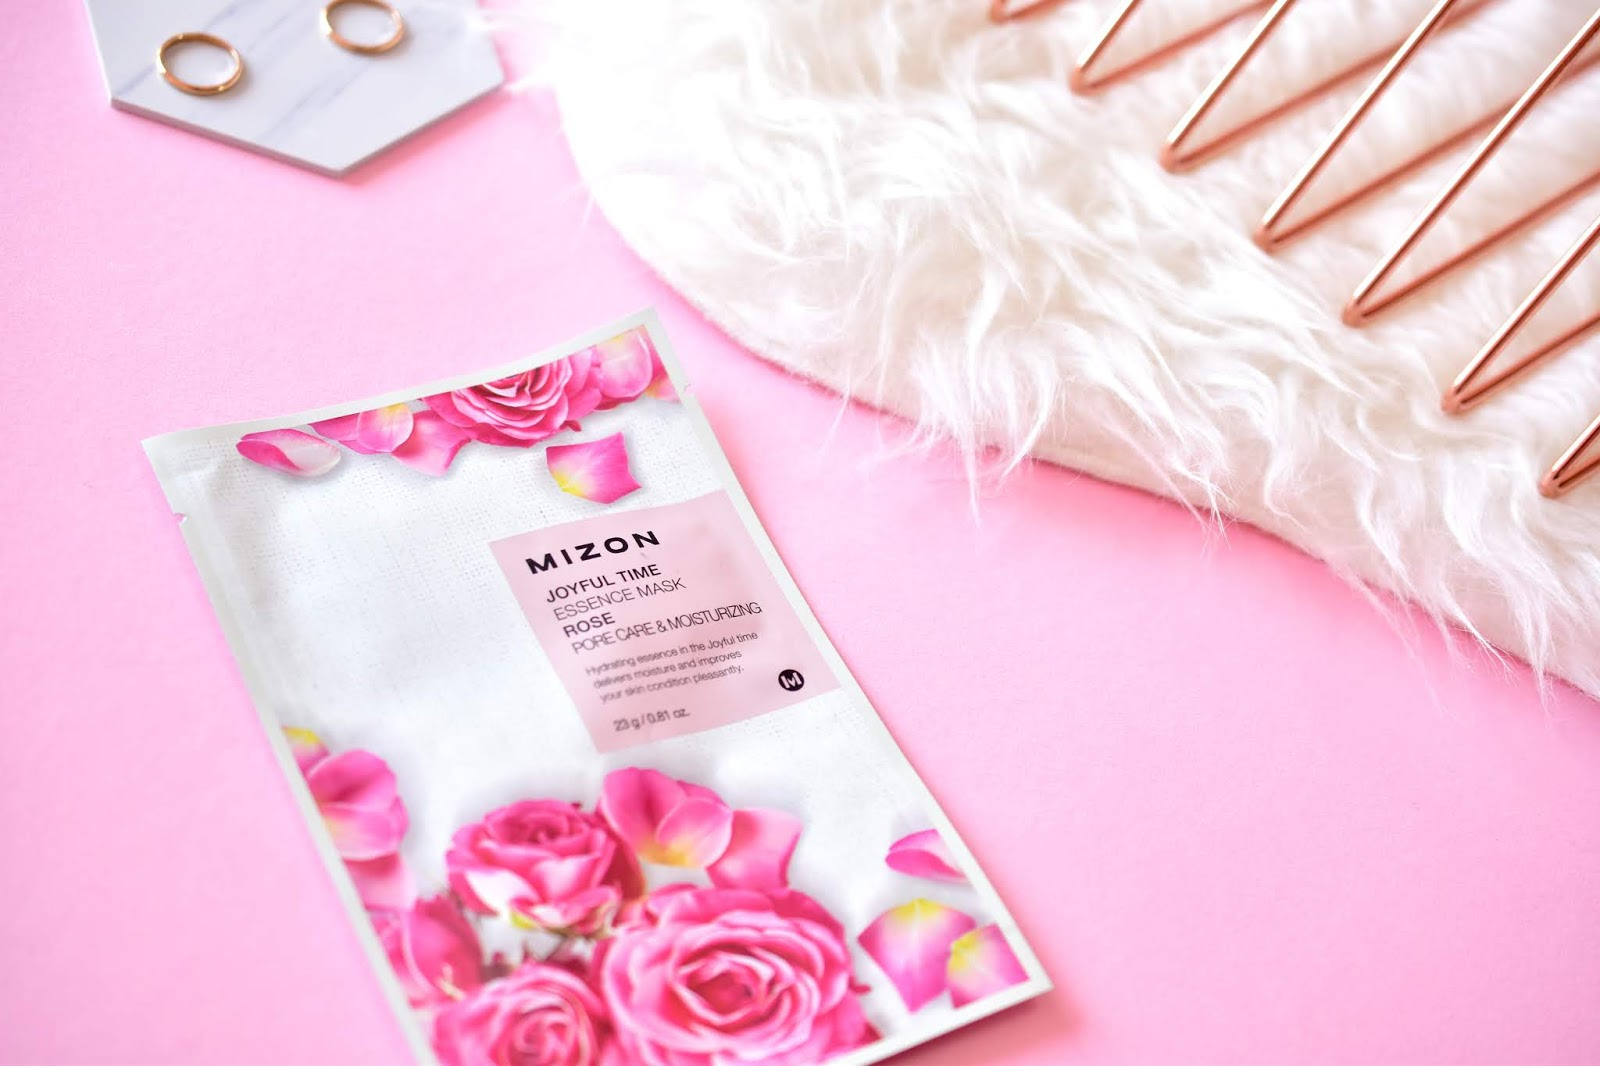 MIZON Joyful Time Essence Mask Rose